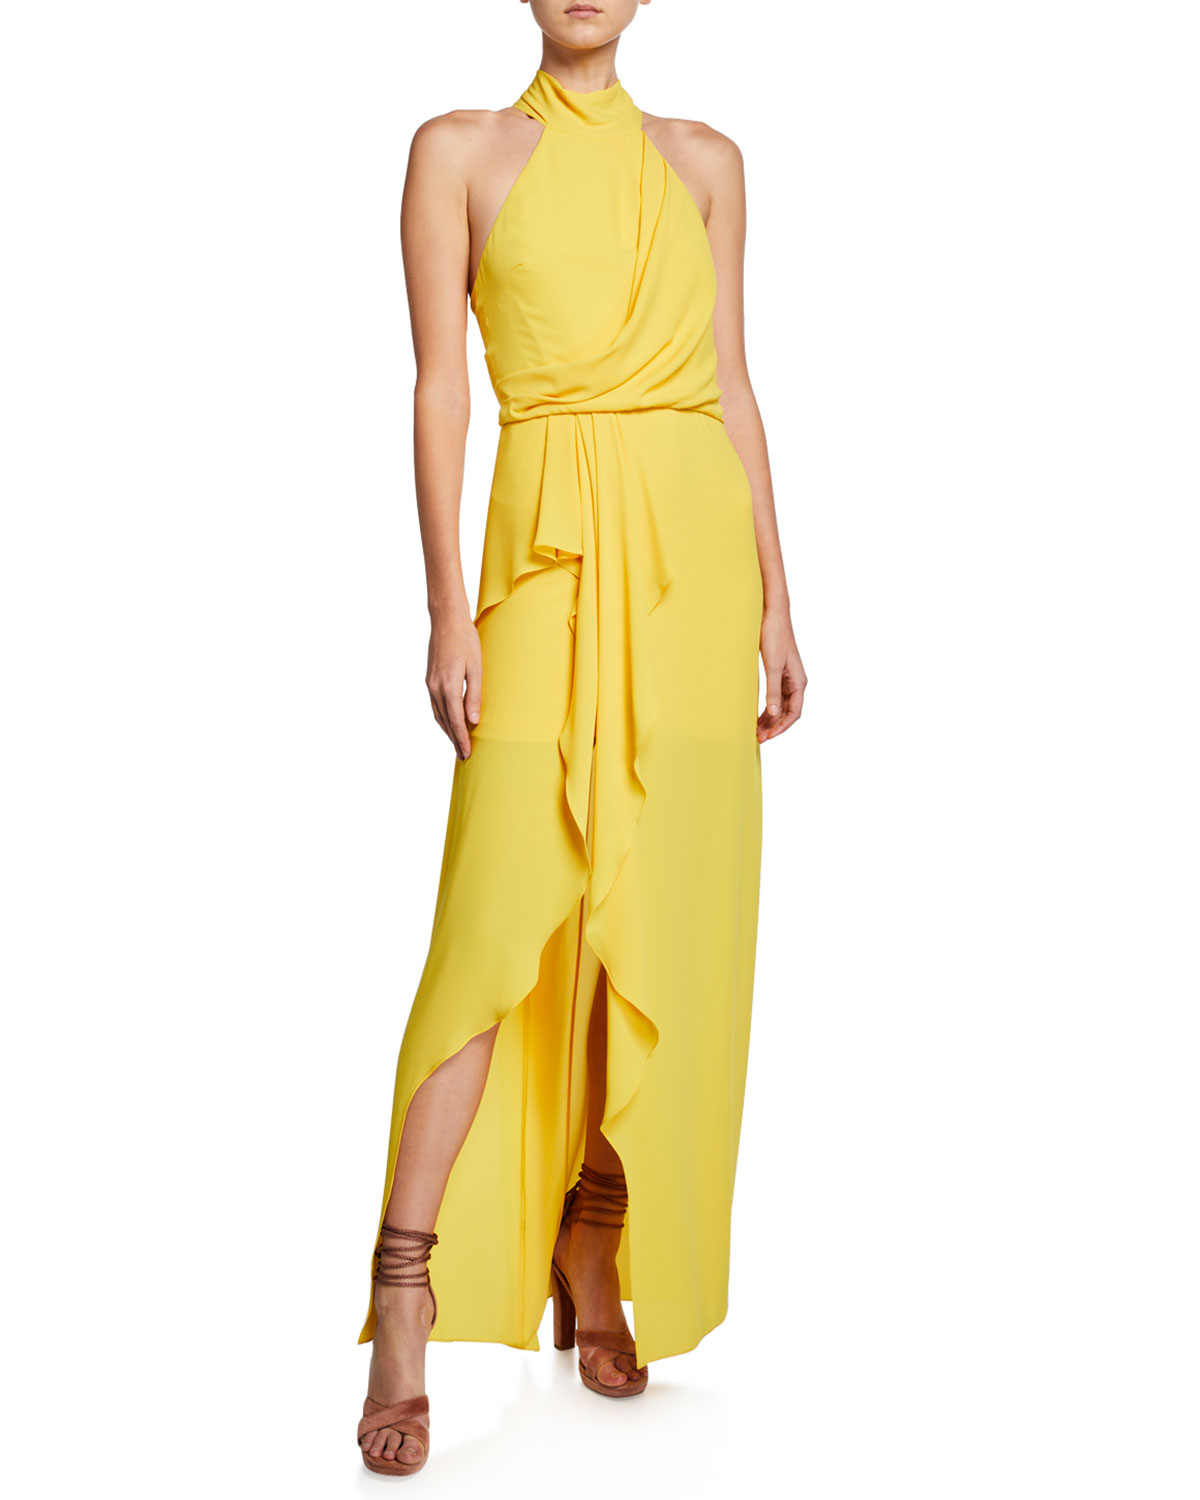 Halston Heritage Tops MOCK-NECK HALTER GOWN WITH DRAPED FRONT DETAIL